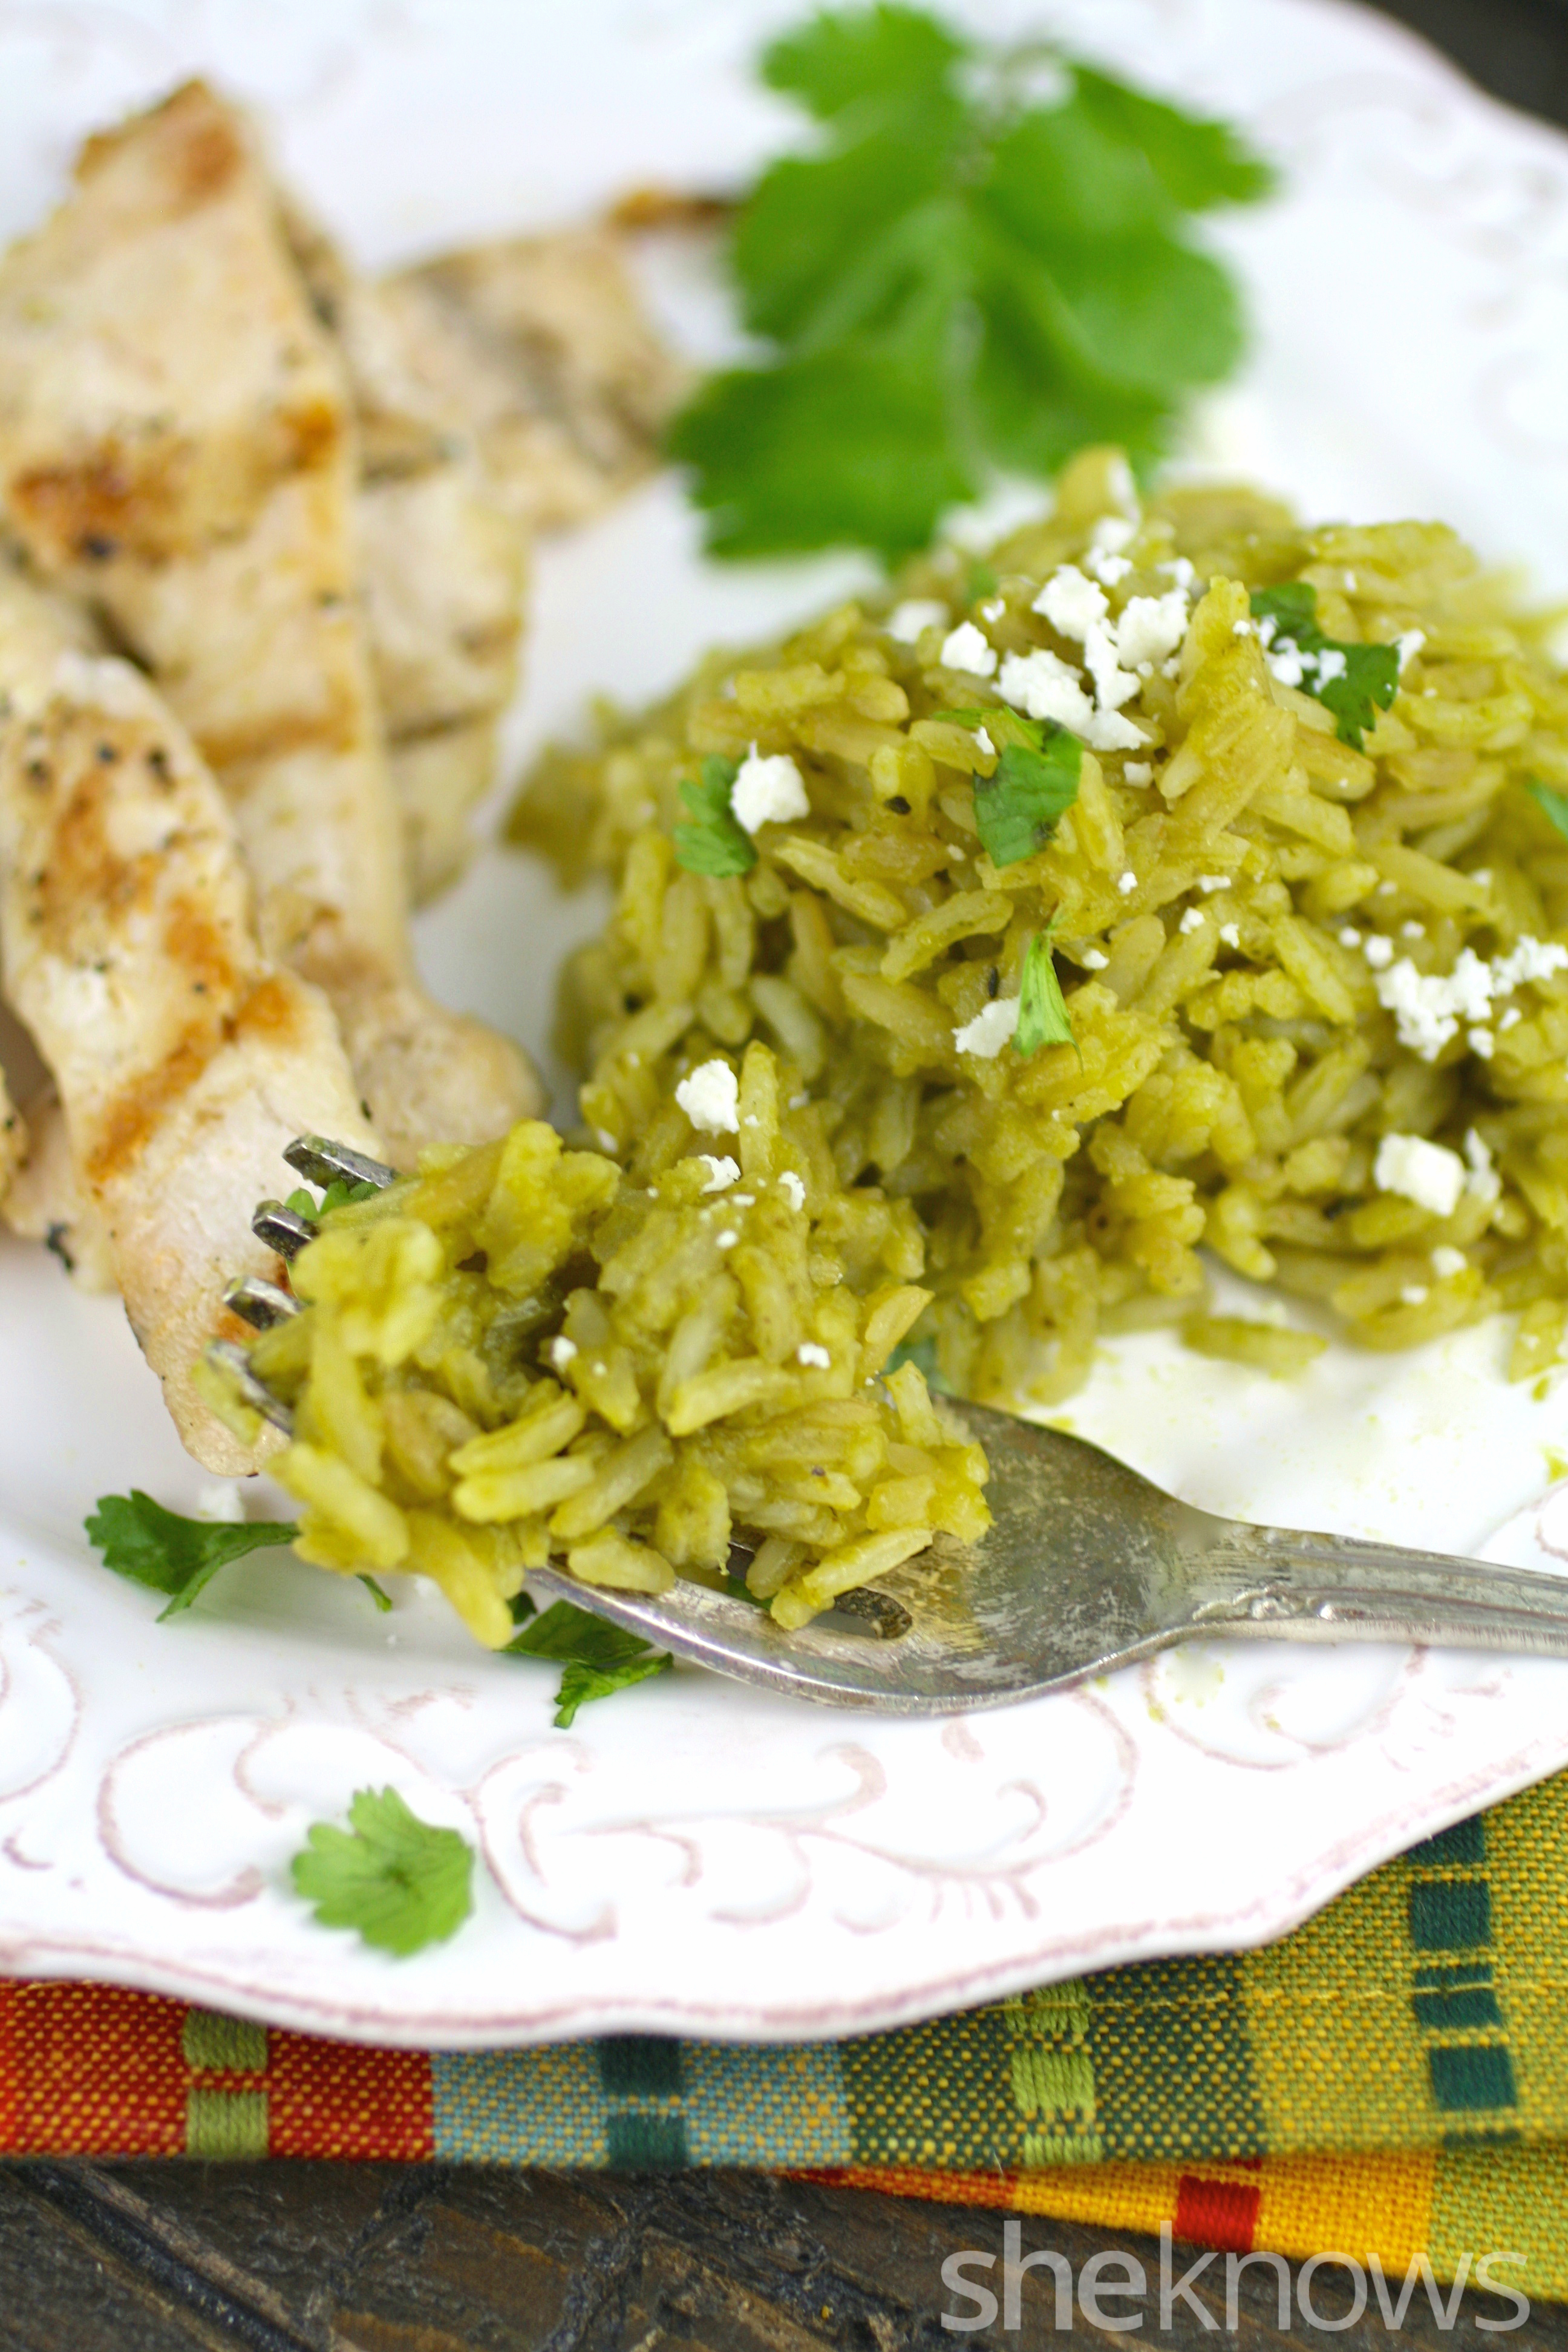 Dig in to a colorful side of arroz verde to serve with grilled chicken!